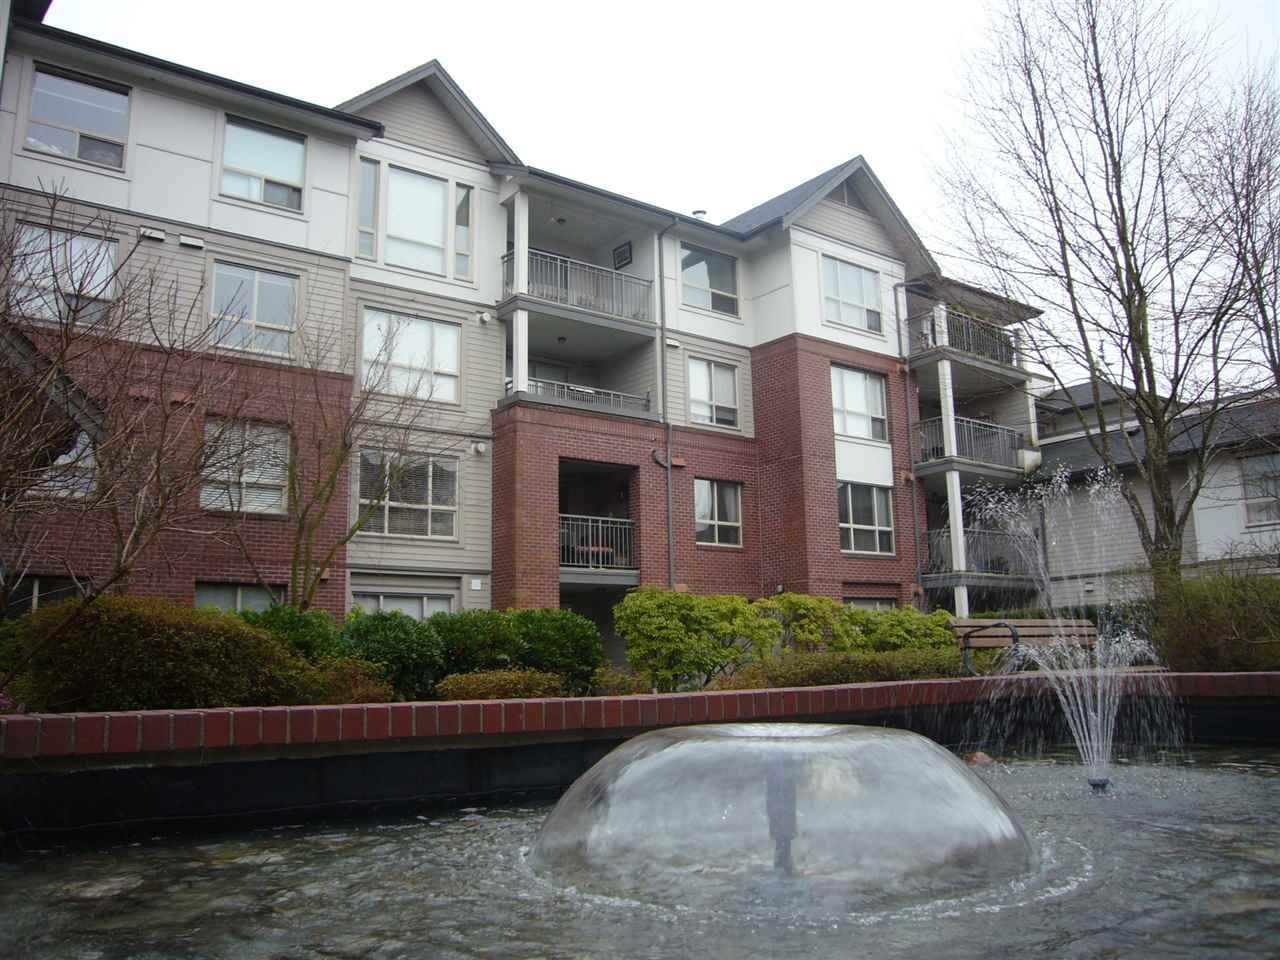 """Main Photo: 407 2167 152 Street in Surrey: Sunnyside Park Surrey Condo for sale in """"Muifield Gardens"""" (South Surrey White Rock)  : MLS®# R2251140"""